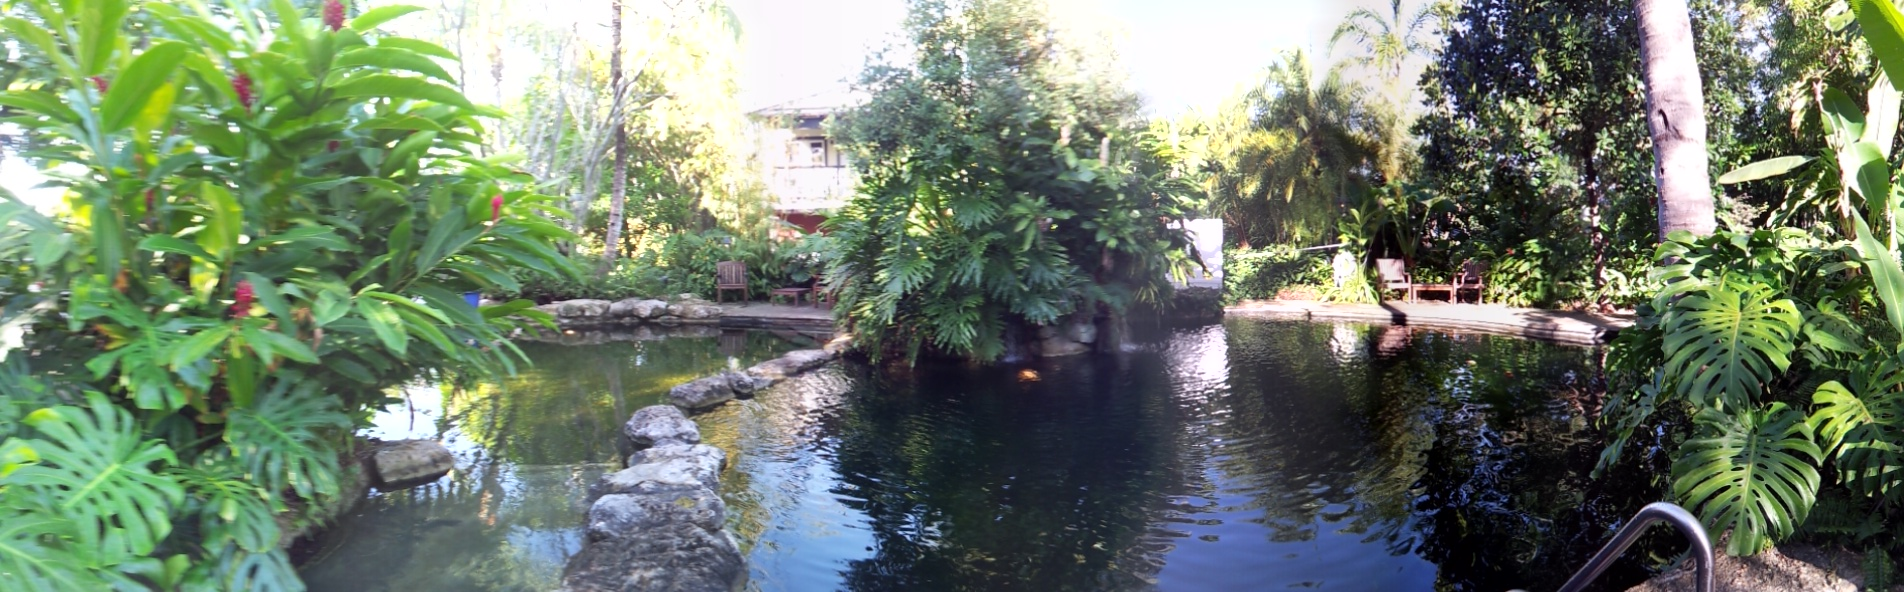 Cenote Freshwater Pool at the Sundy House